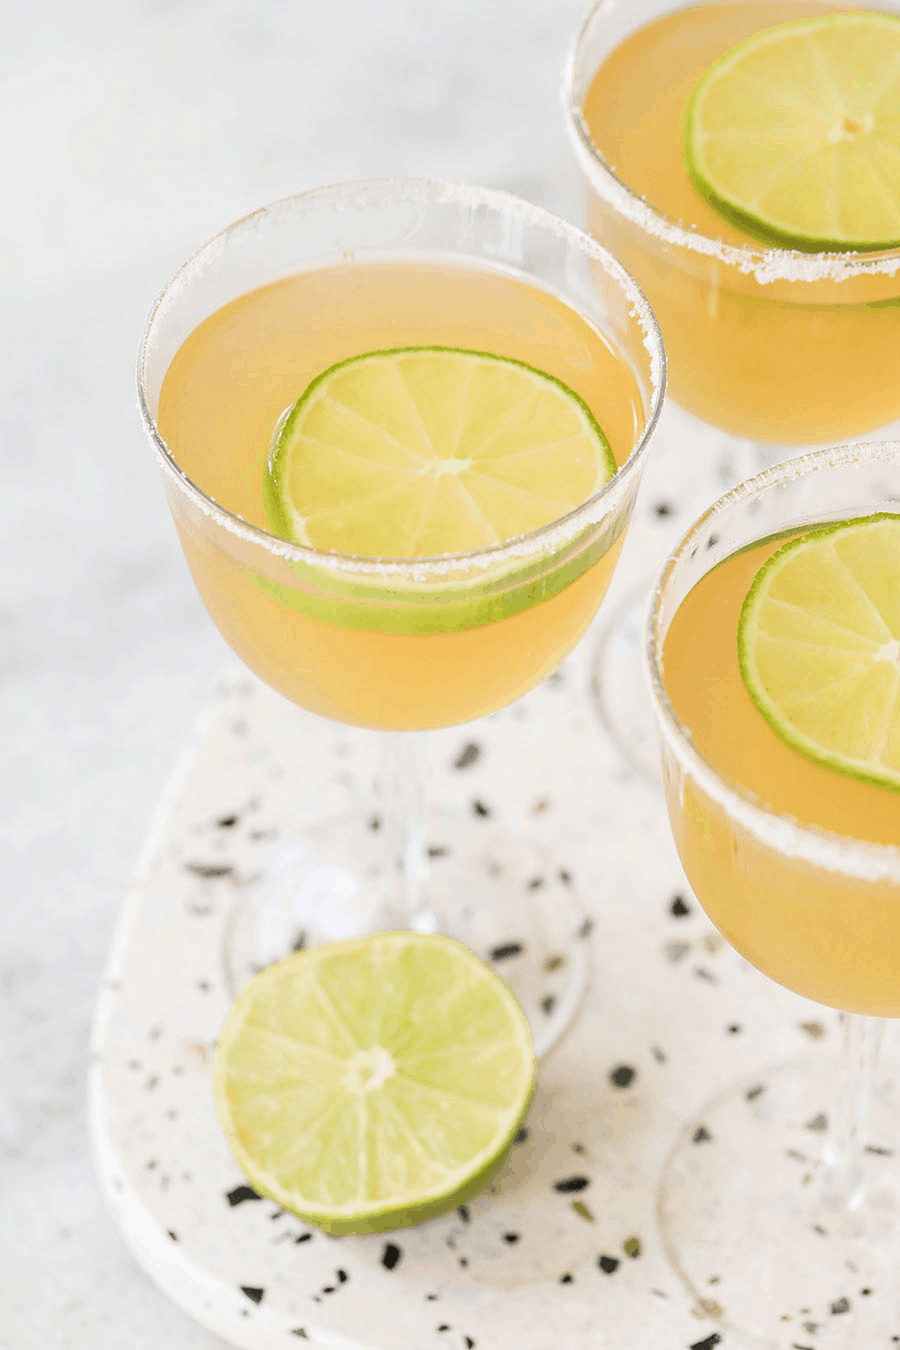 A classic daiquiri with sugar rim and lime slice.